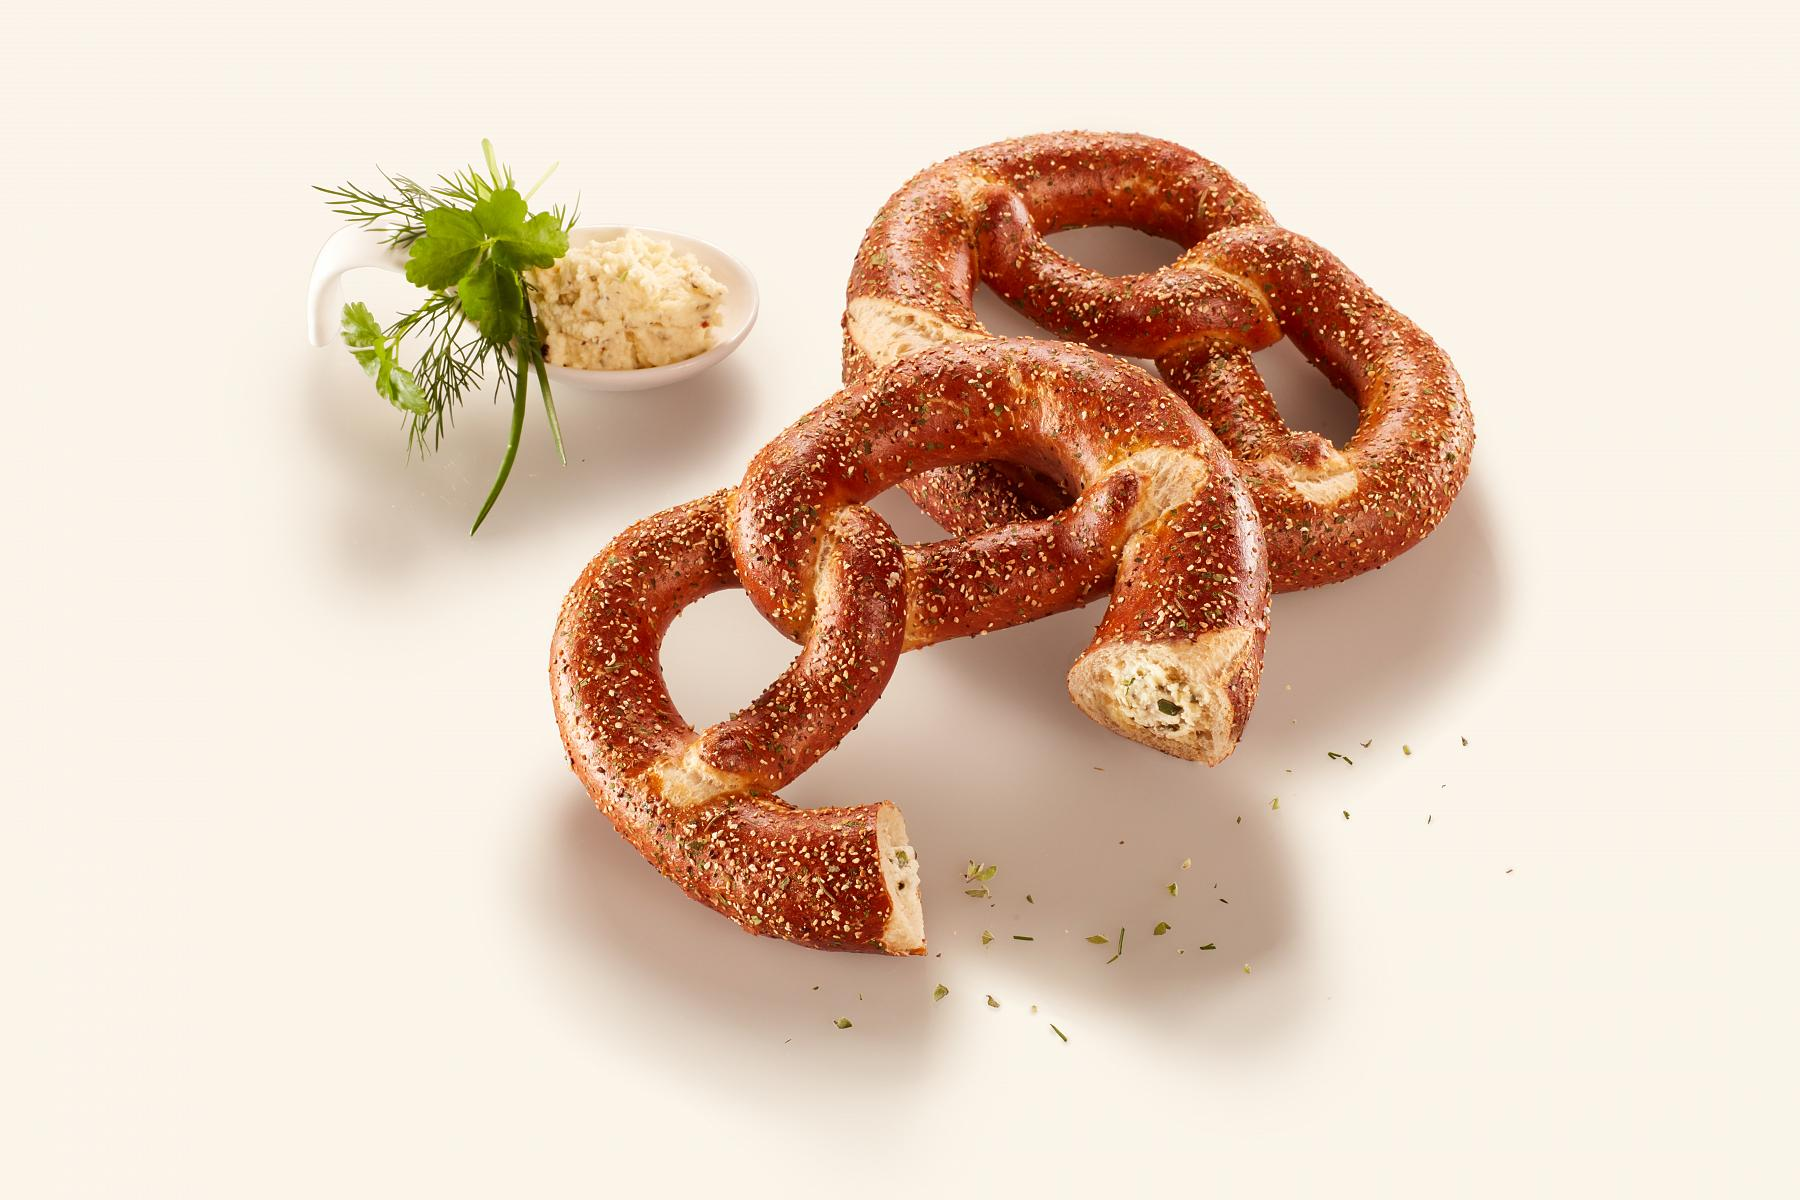 Pretzel filled with herb butter, 81 g